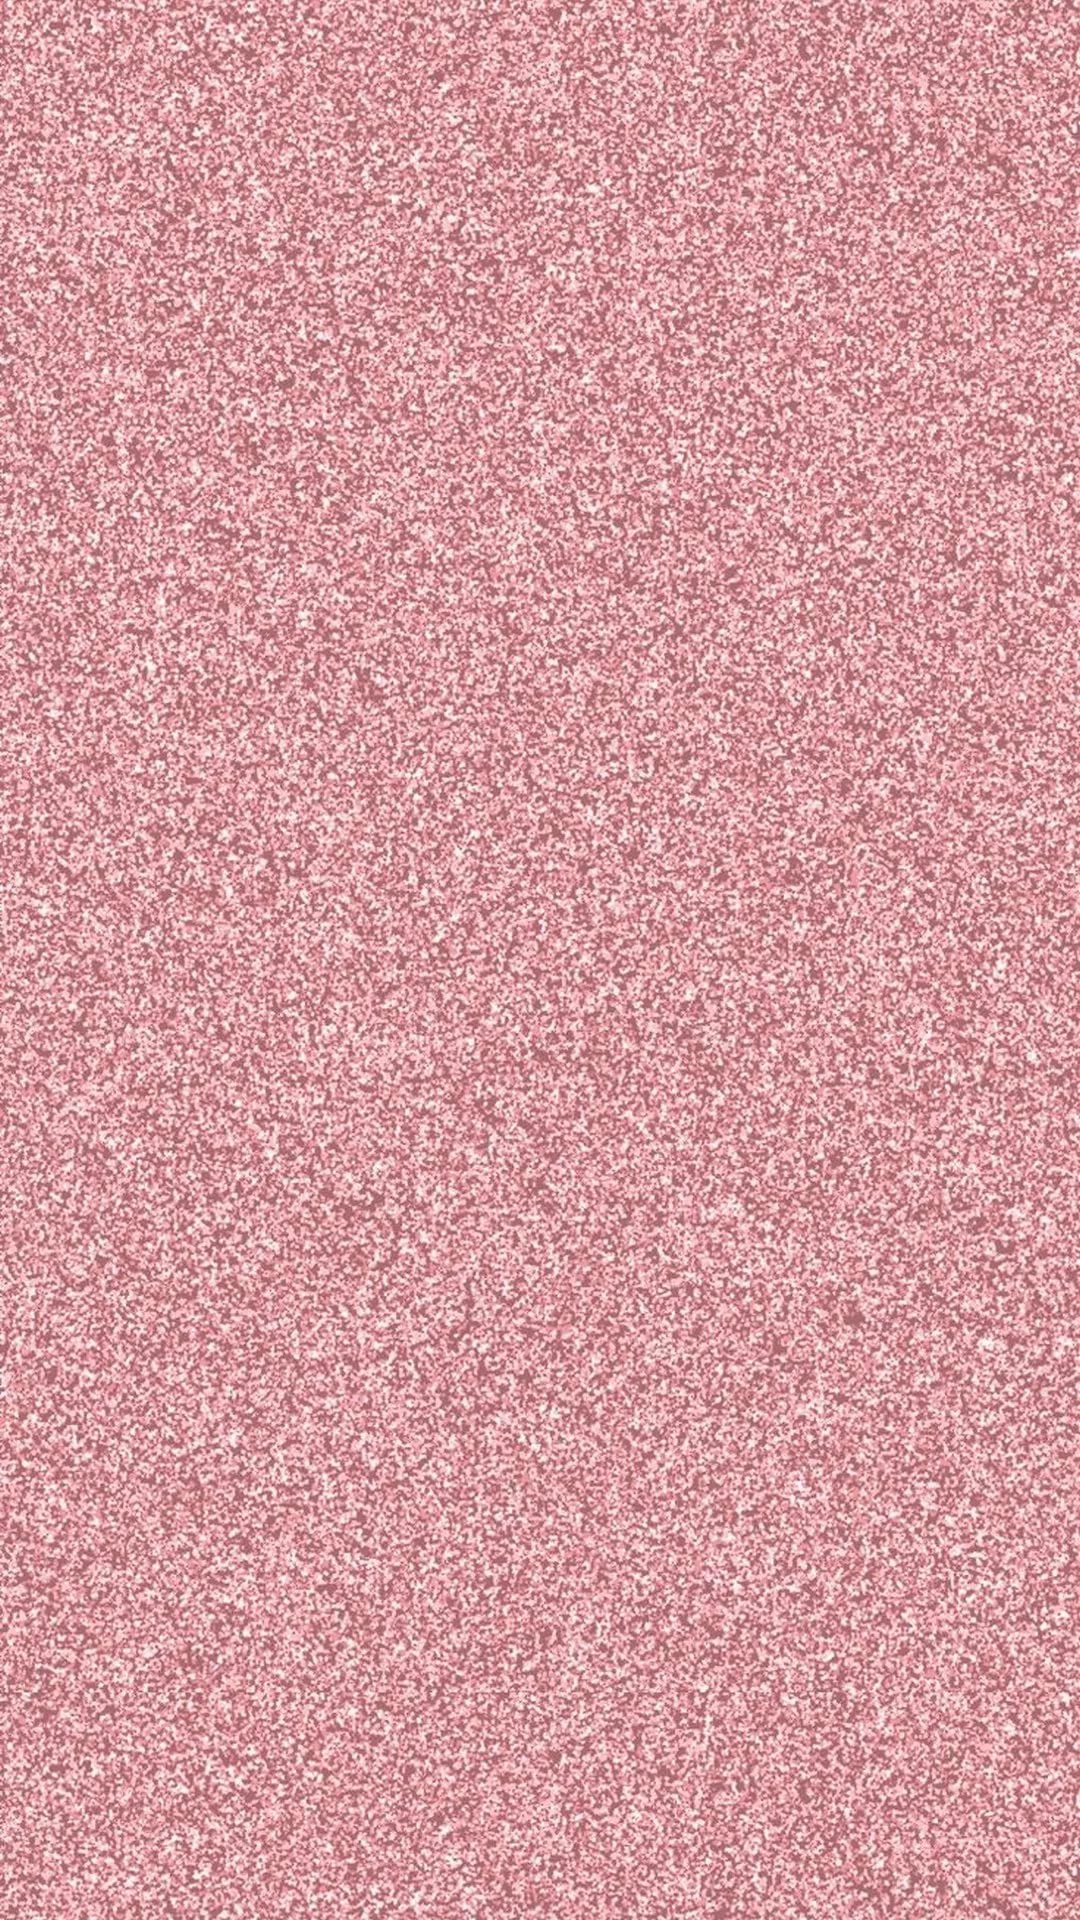 Grey And Rose Gold Hd Wallpaper Android Pink Glitter Wallpaper Pink And Silver Wallpaper Iphone Wallpaper Glitter